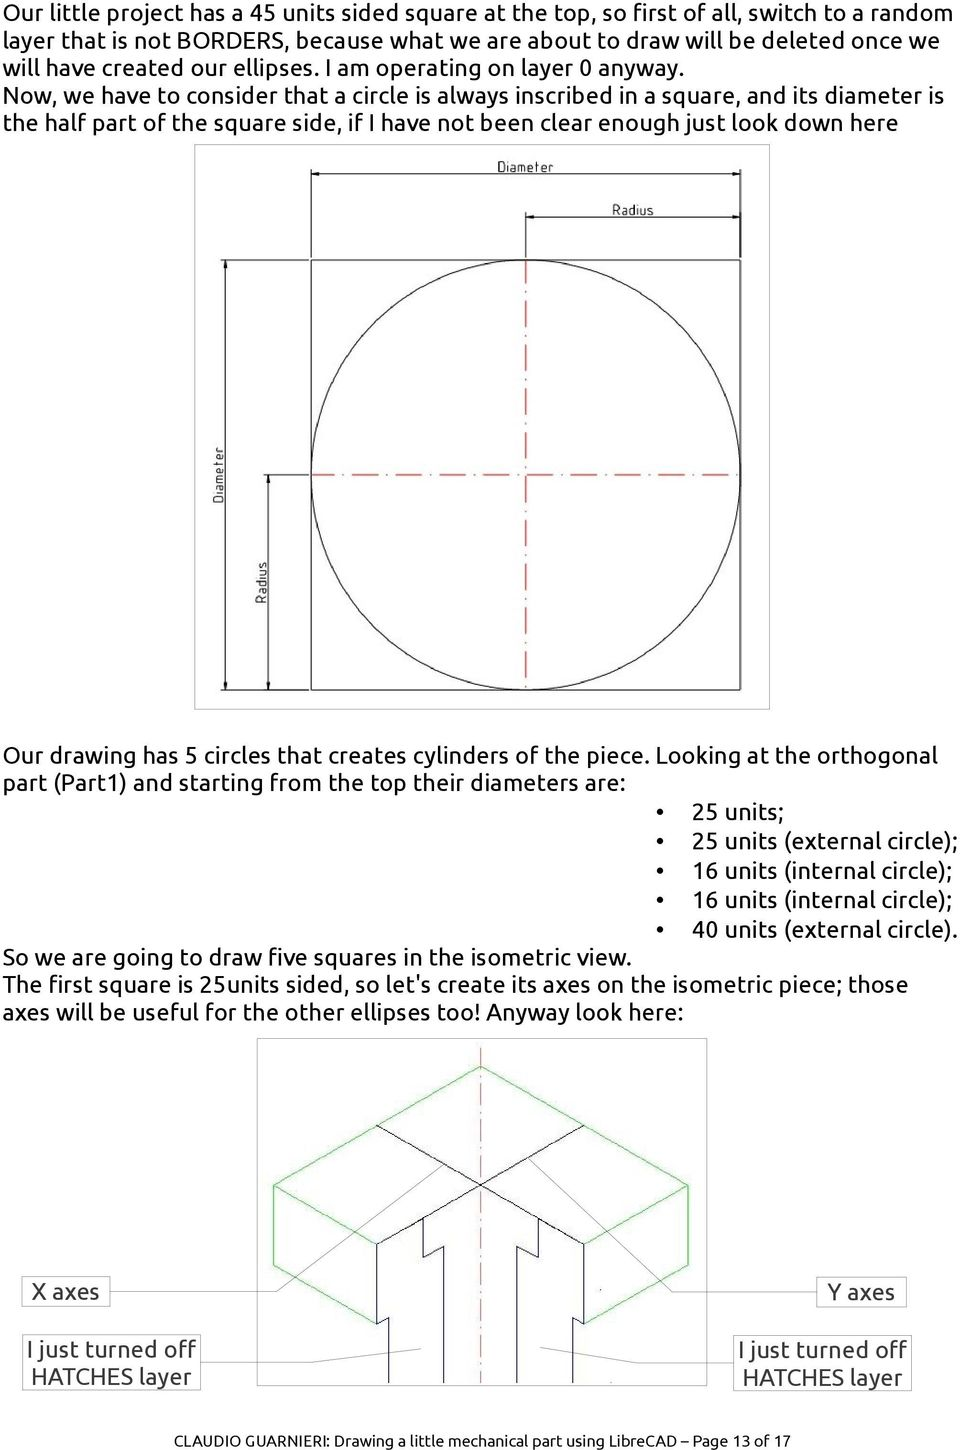 Drawing a little mechanical part using LibreCAD - PDF